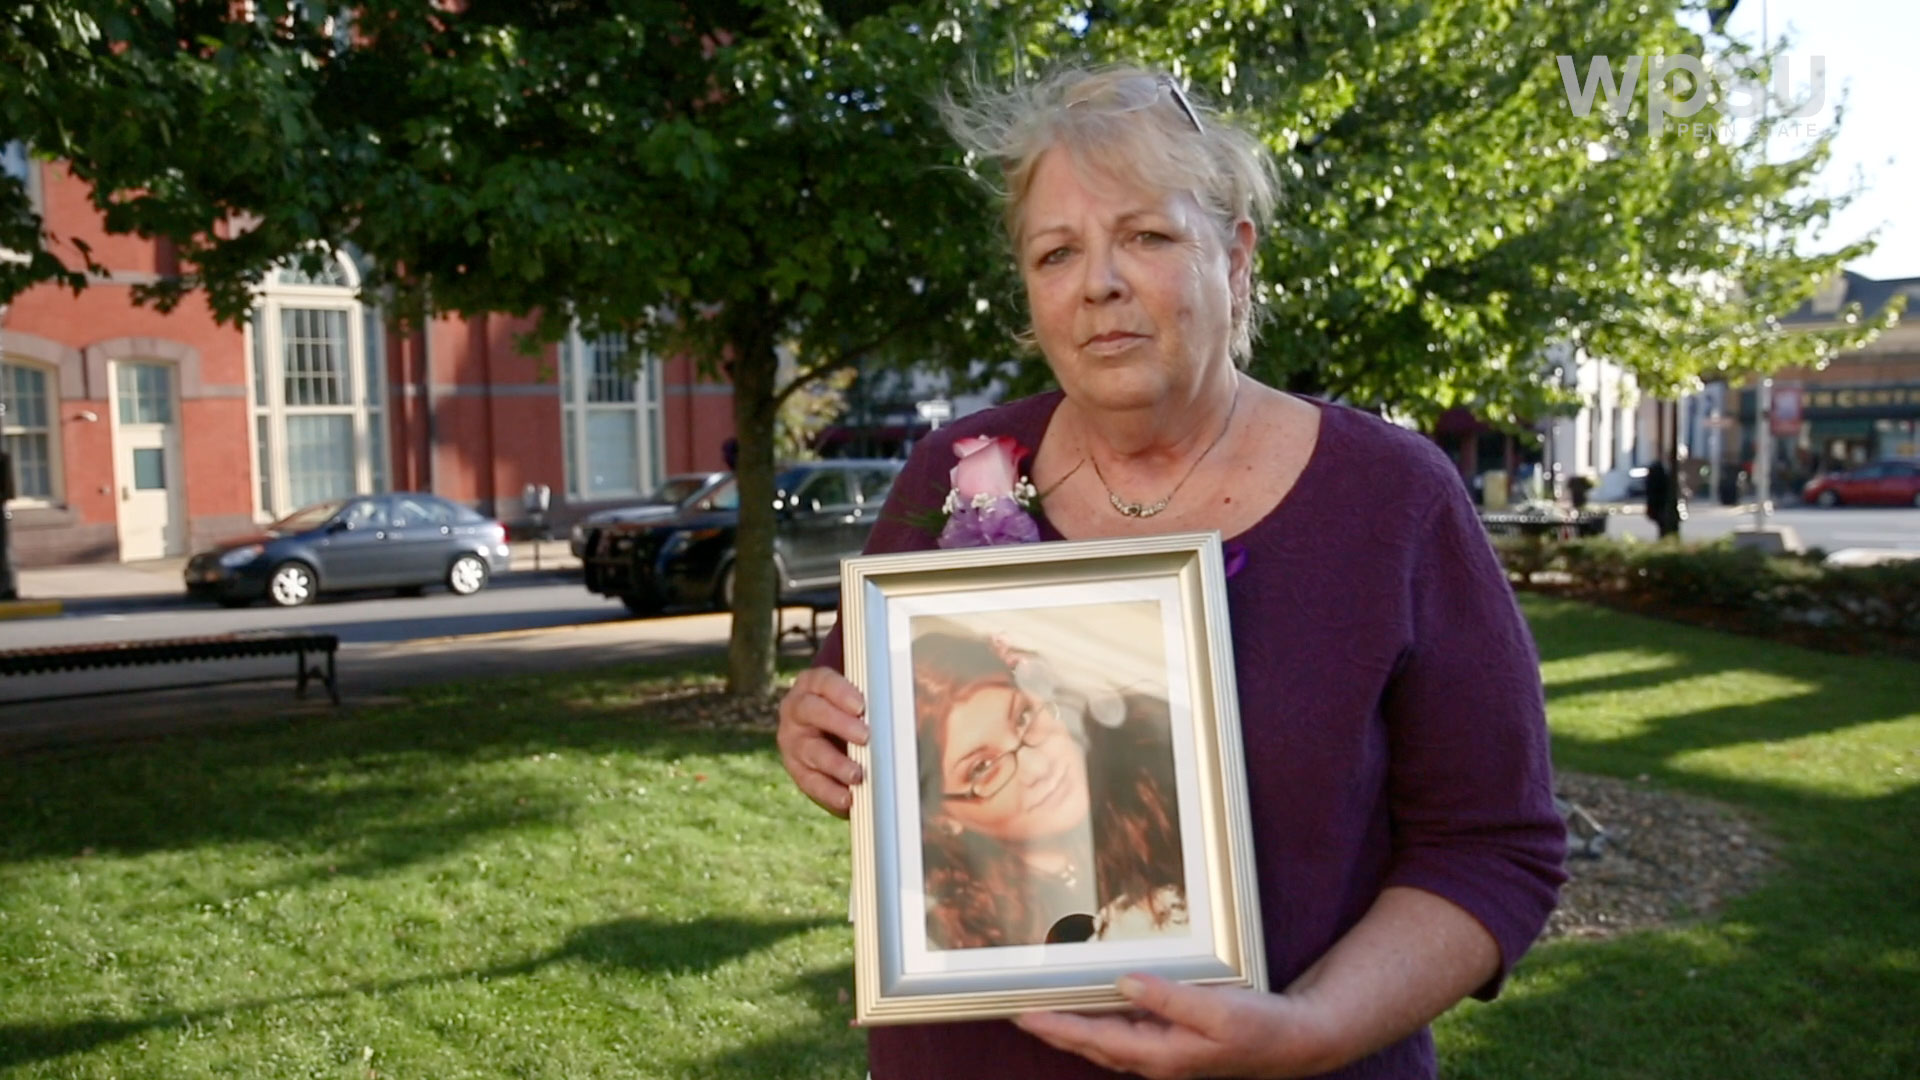 Older woman holding framed photo of young woman